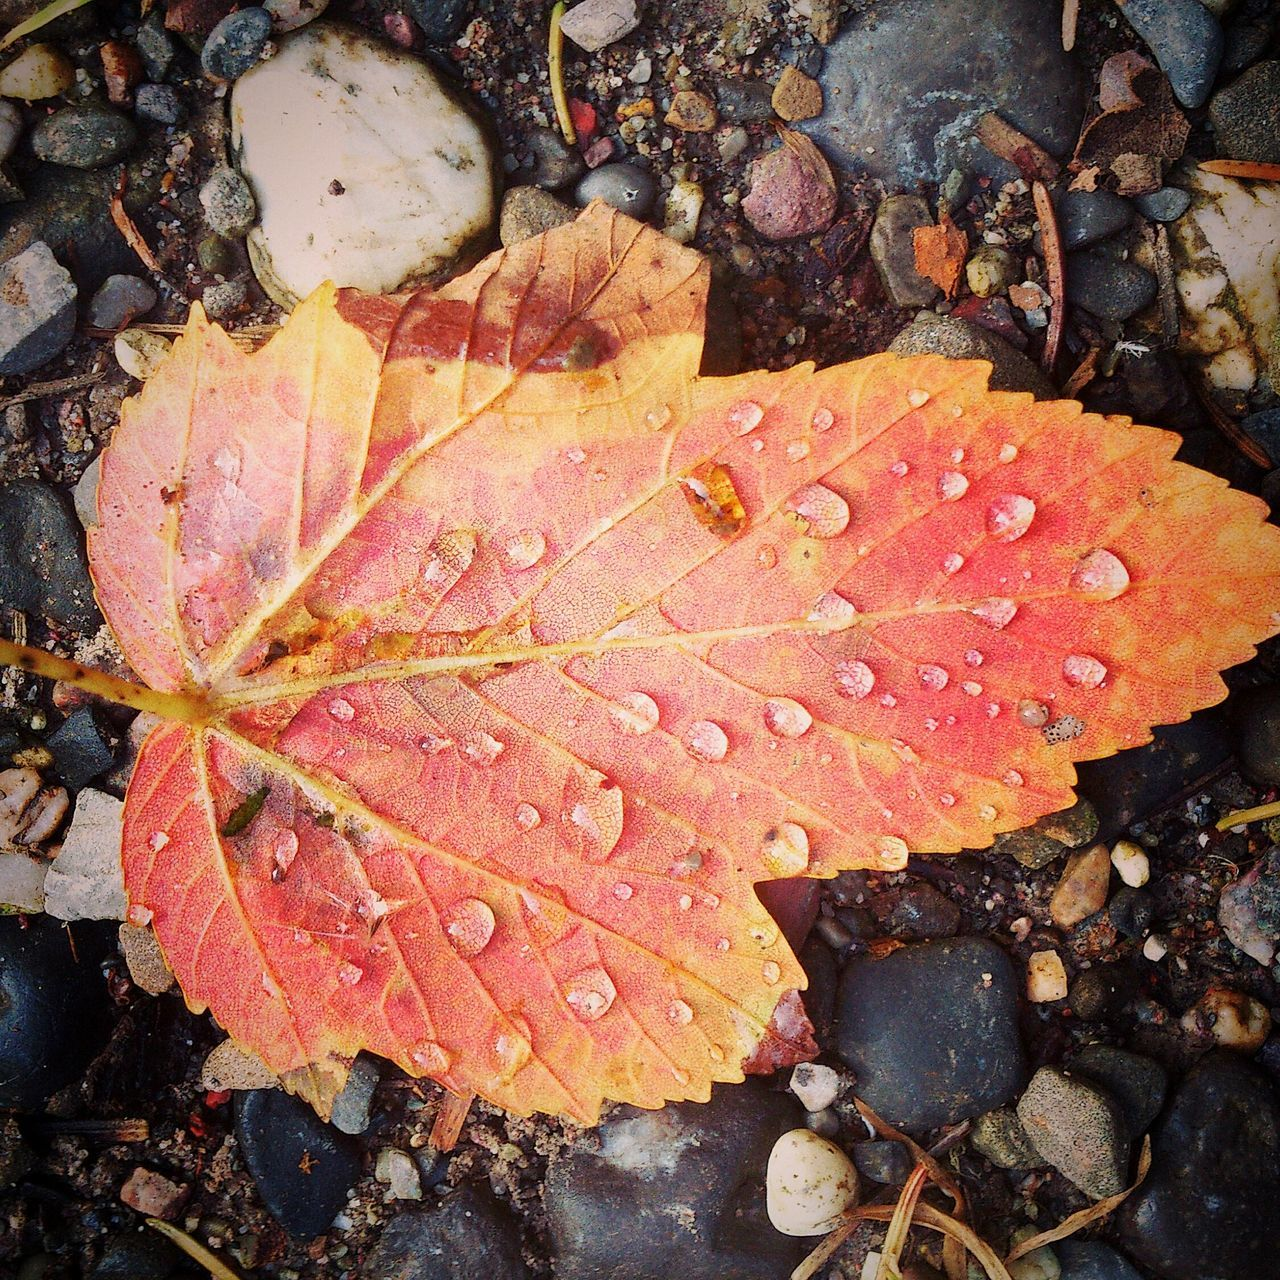 leaf, autumn, change, nature, dry, outdoors, day, leaves, wet, maple, weather, beauty in nature, no people, close-up, water, maple leaf, fragility, drop, high angle view, red, cold temperature